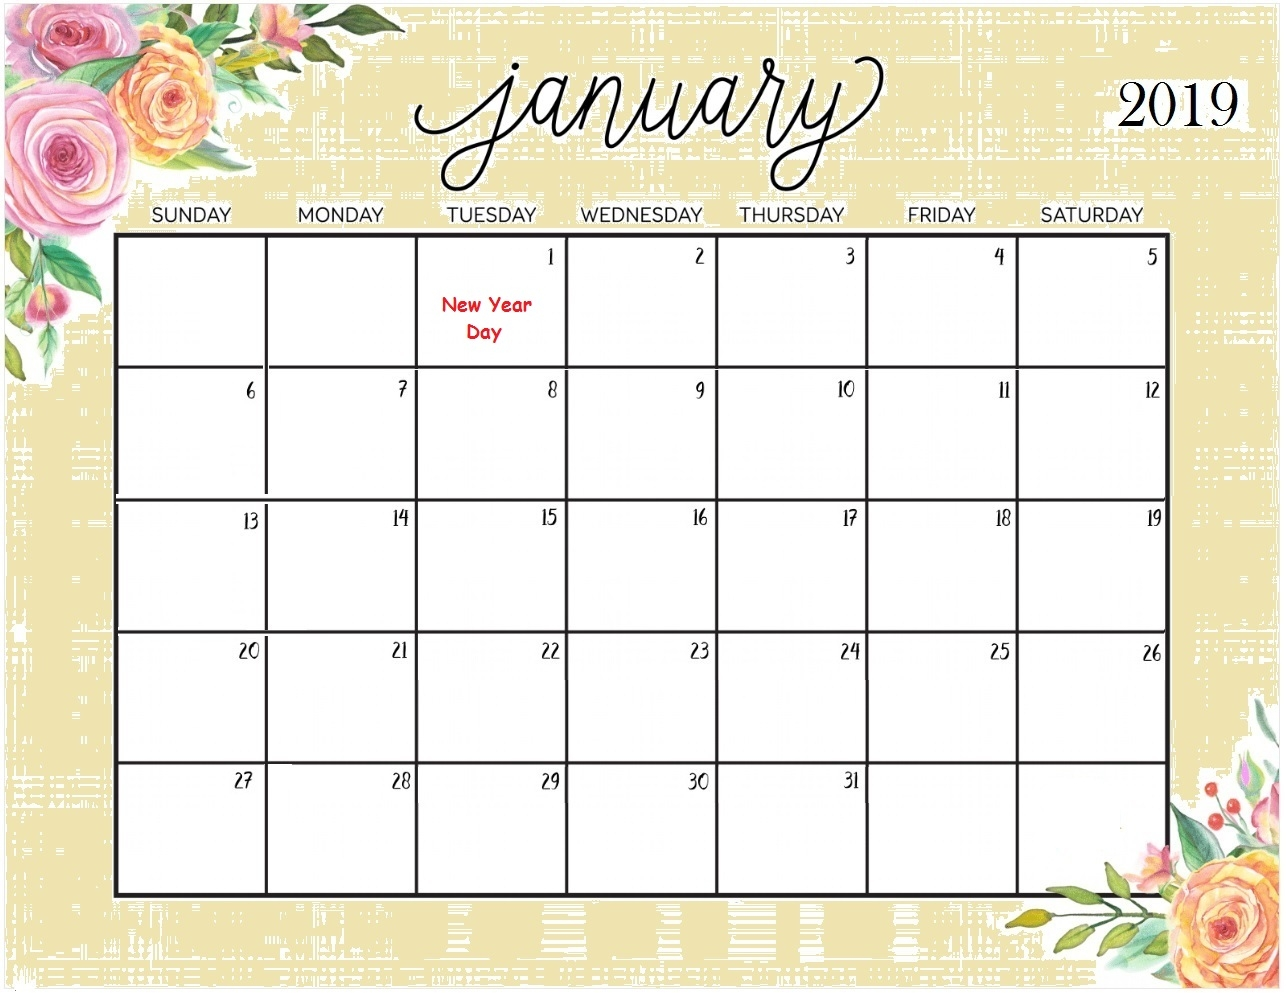 january 2019 blank calendar template printable free april 2019::January 2019 Calendar Printable Template